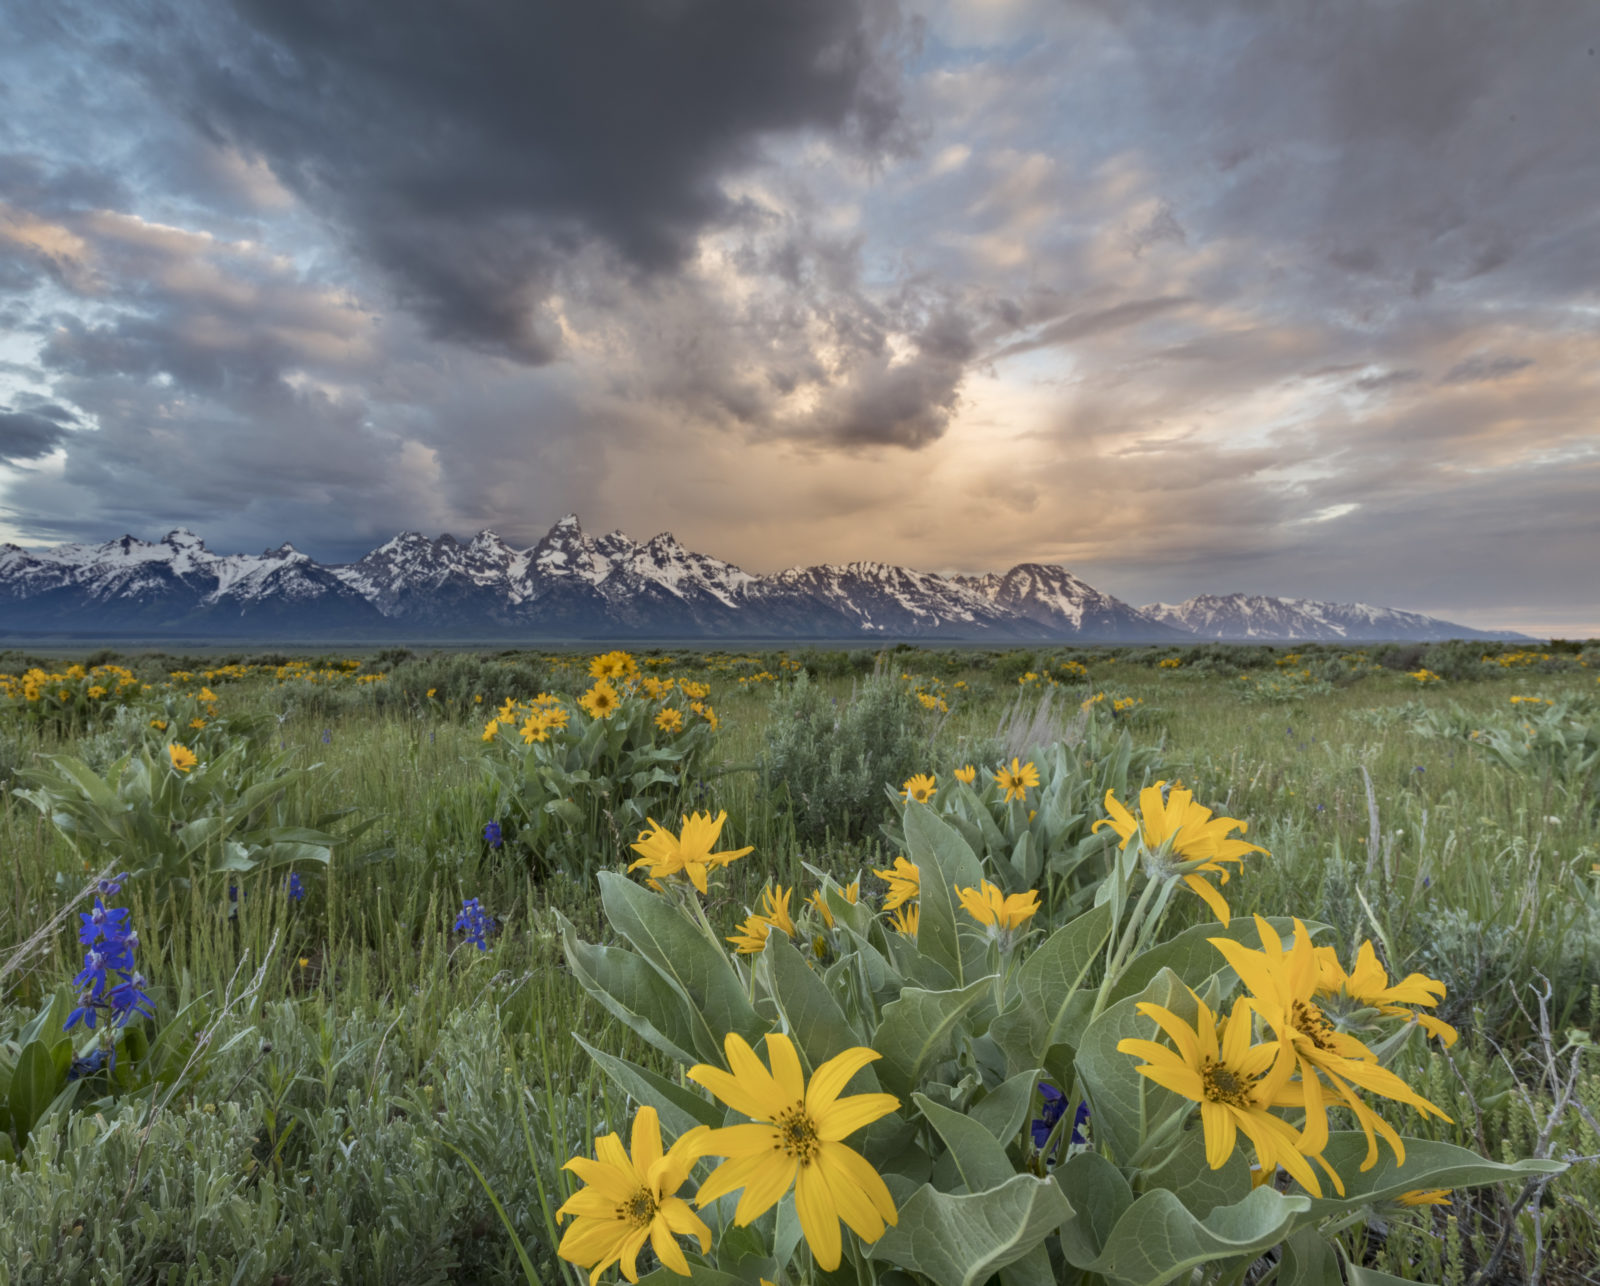 Clearing storm over the Tetons